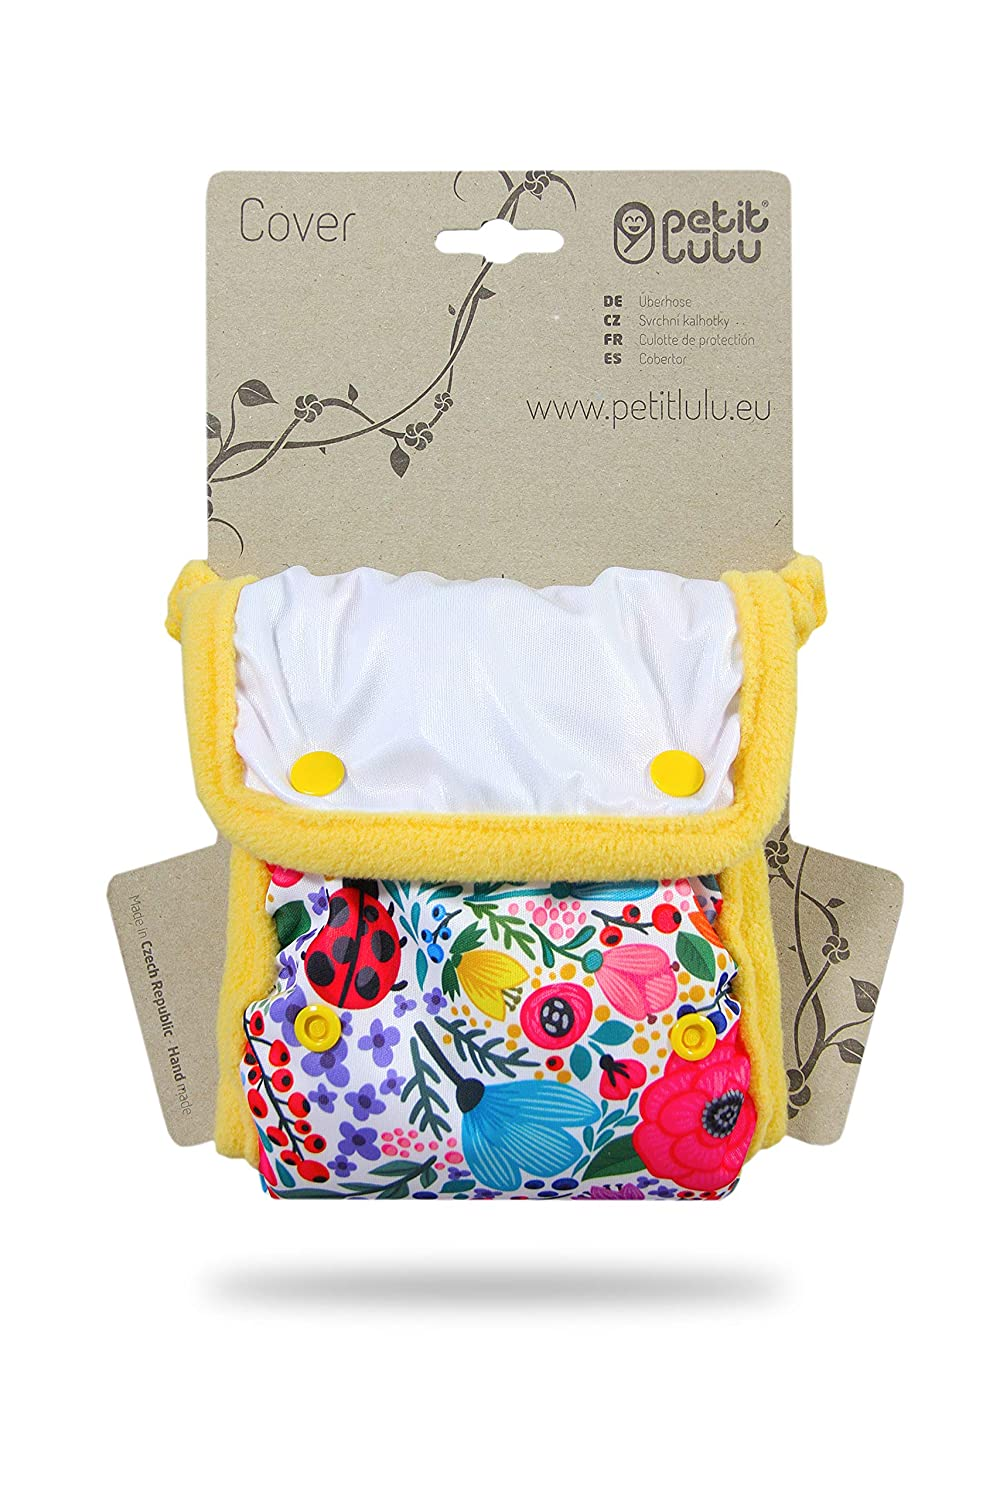 Reusable /& Washable ETNO EC Nappy Waterproof Petit Lulu Minimal Nappy Cover Made in Europe